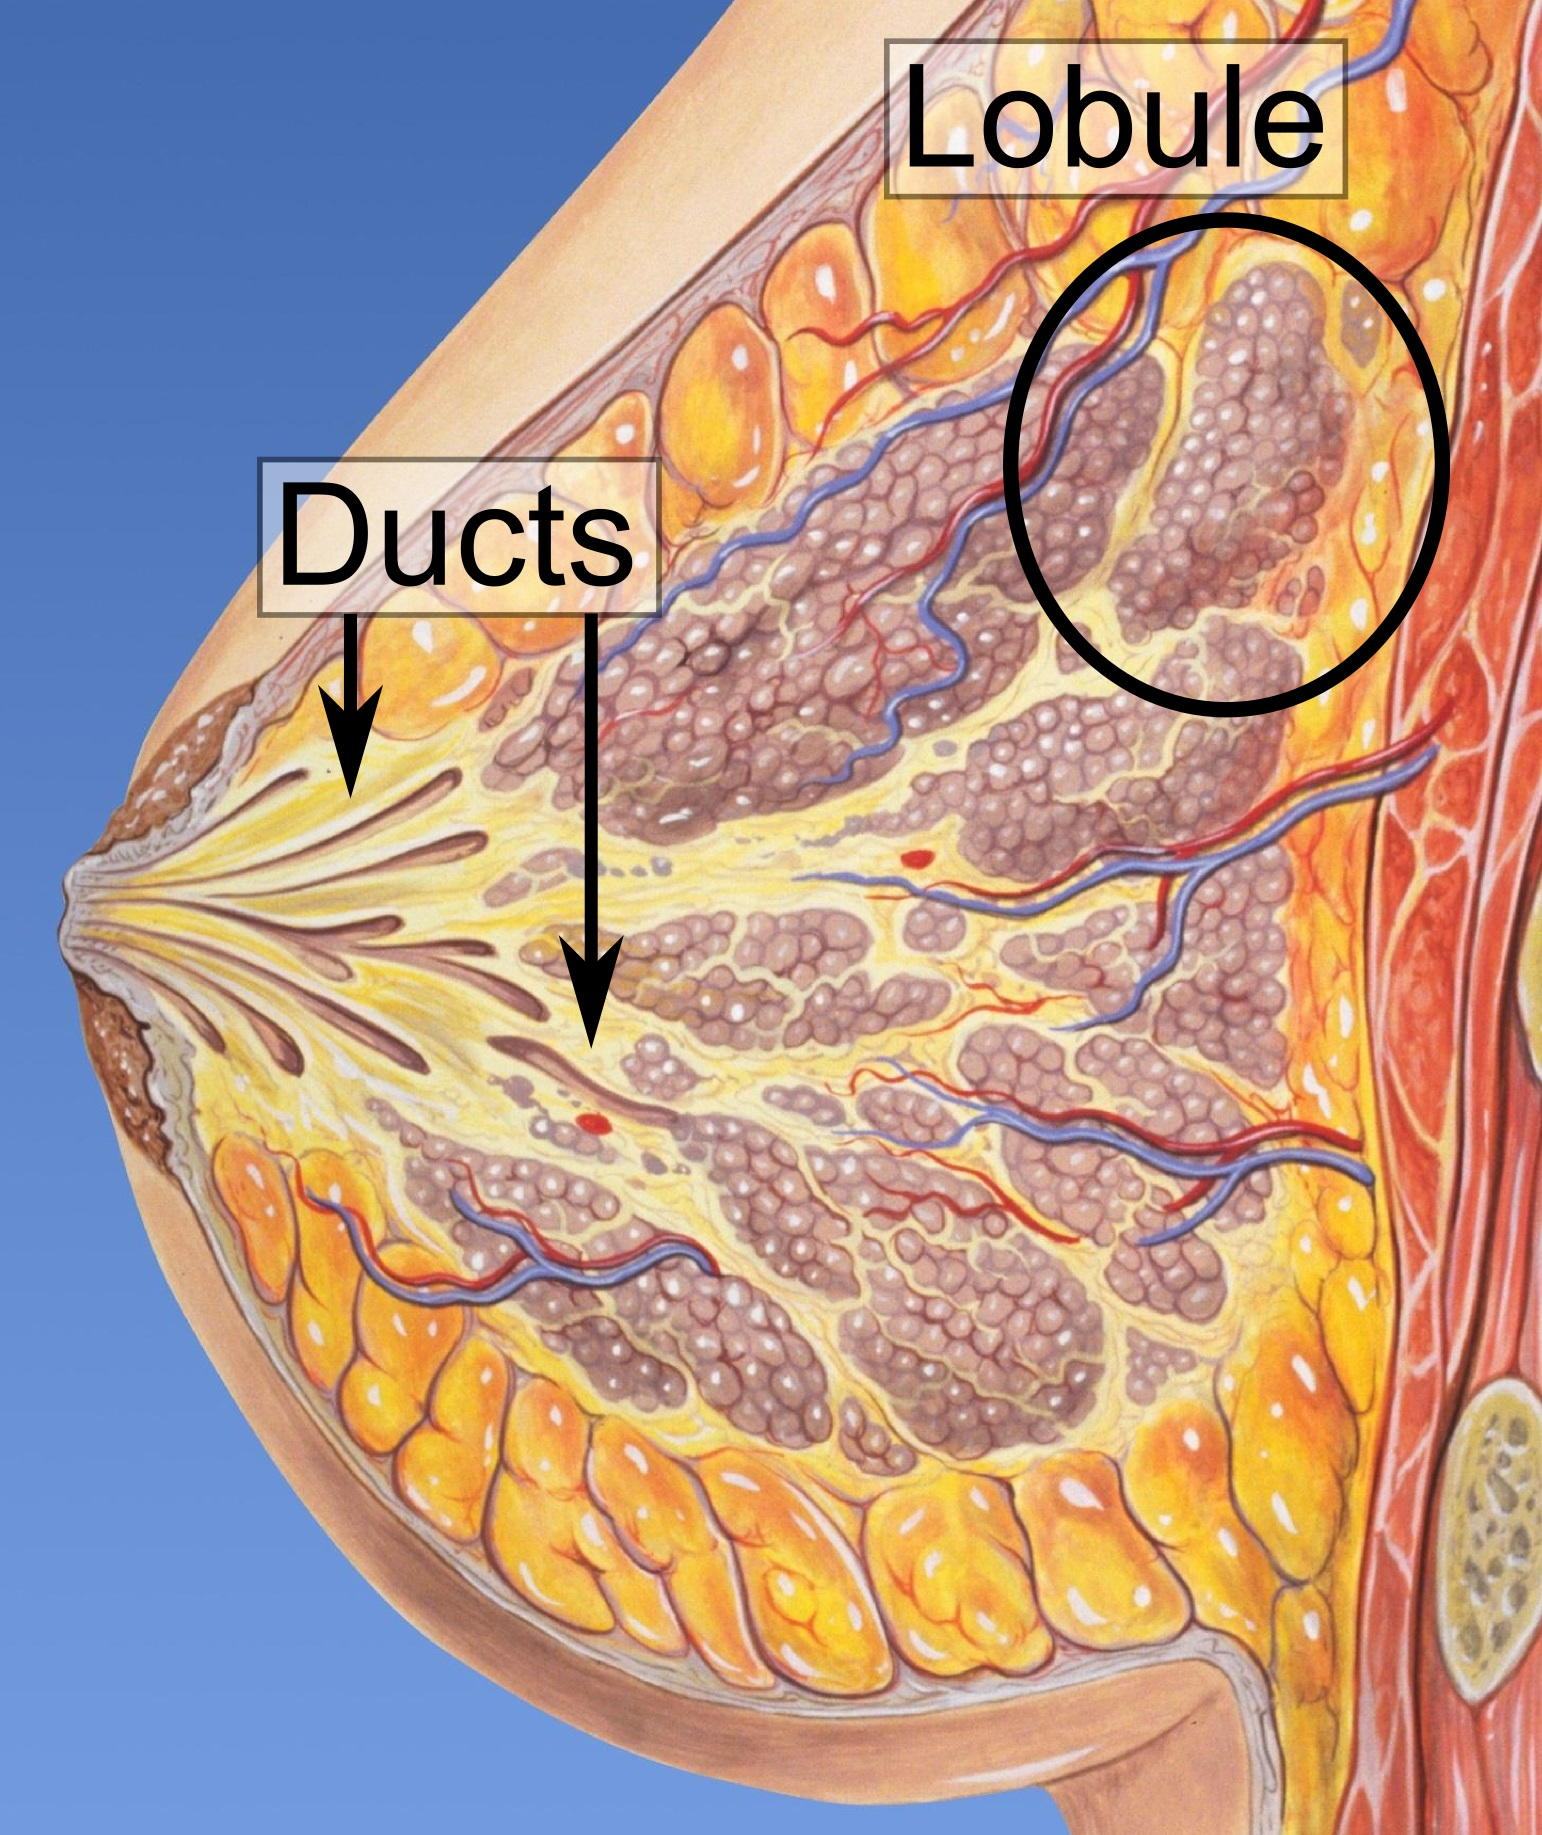 duct papilloma means